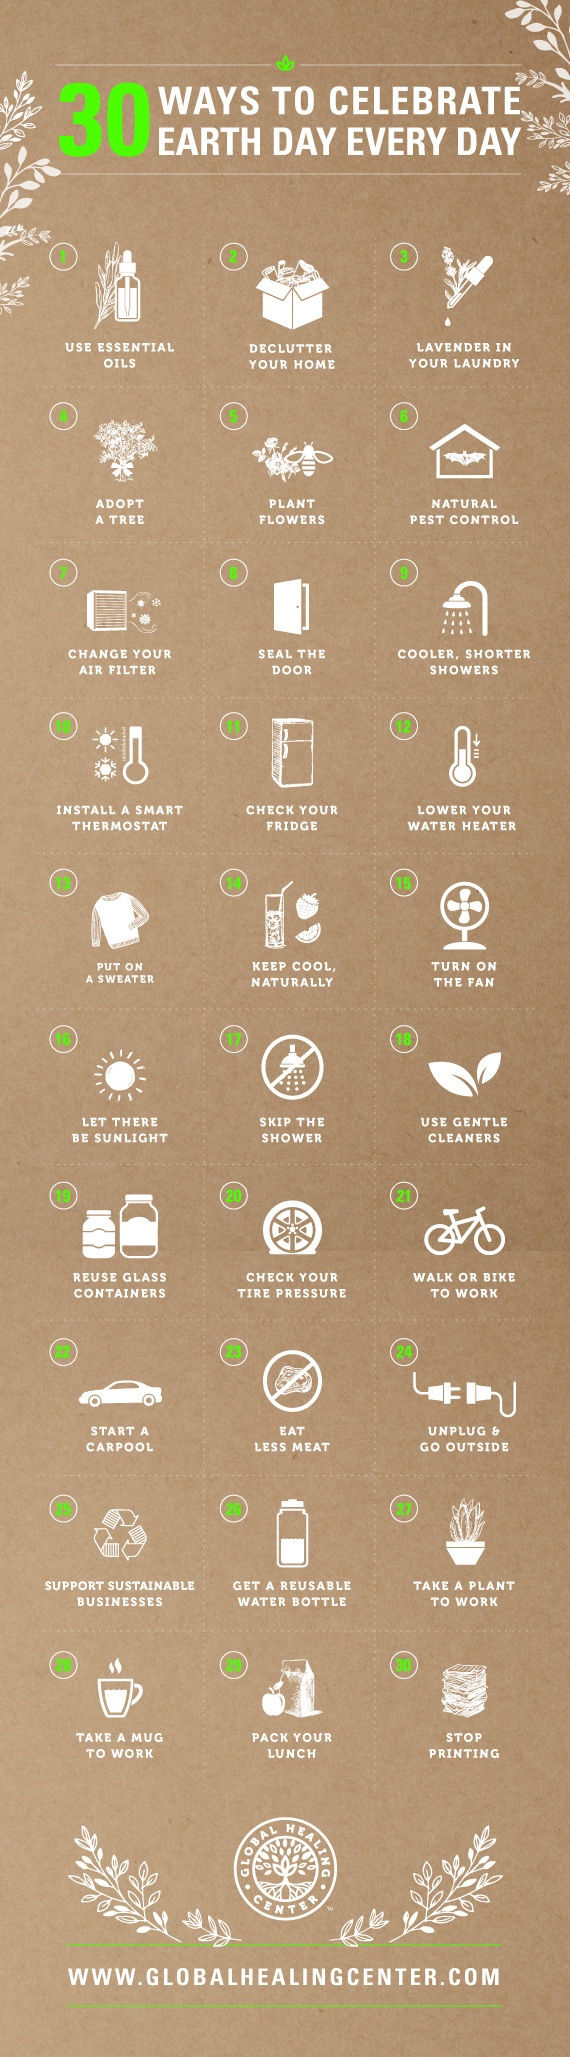 Earth Day Infographic